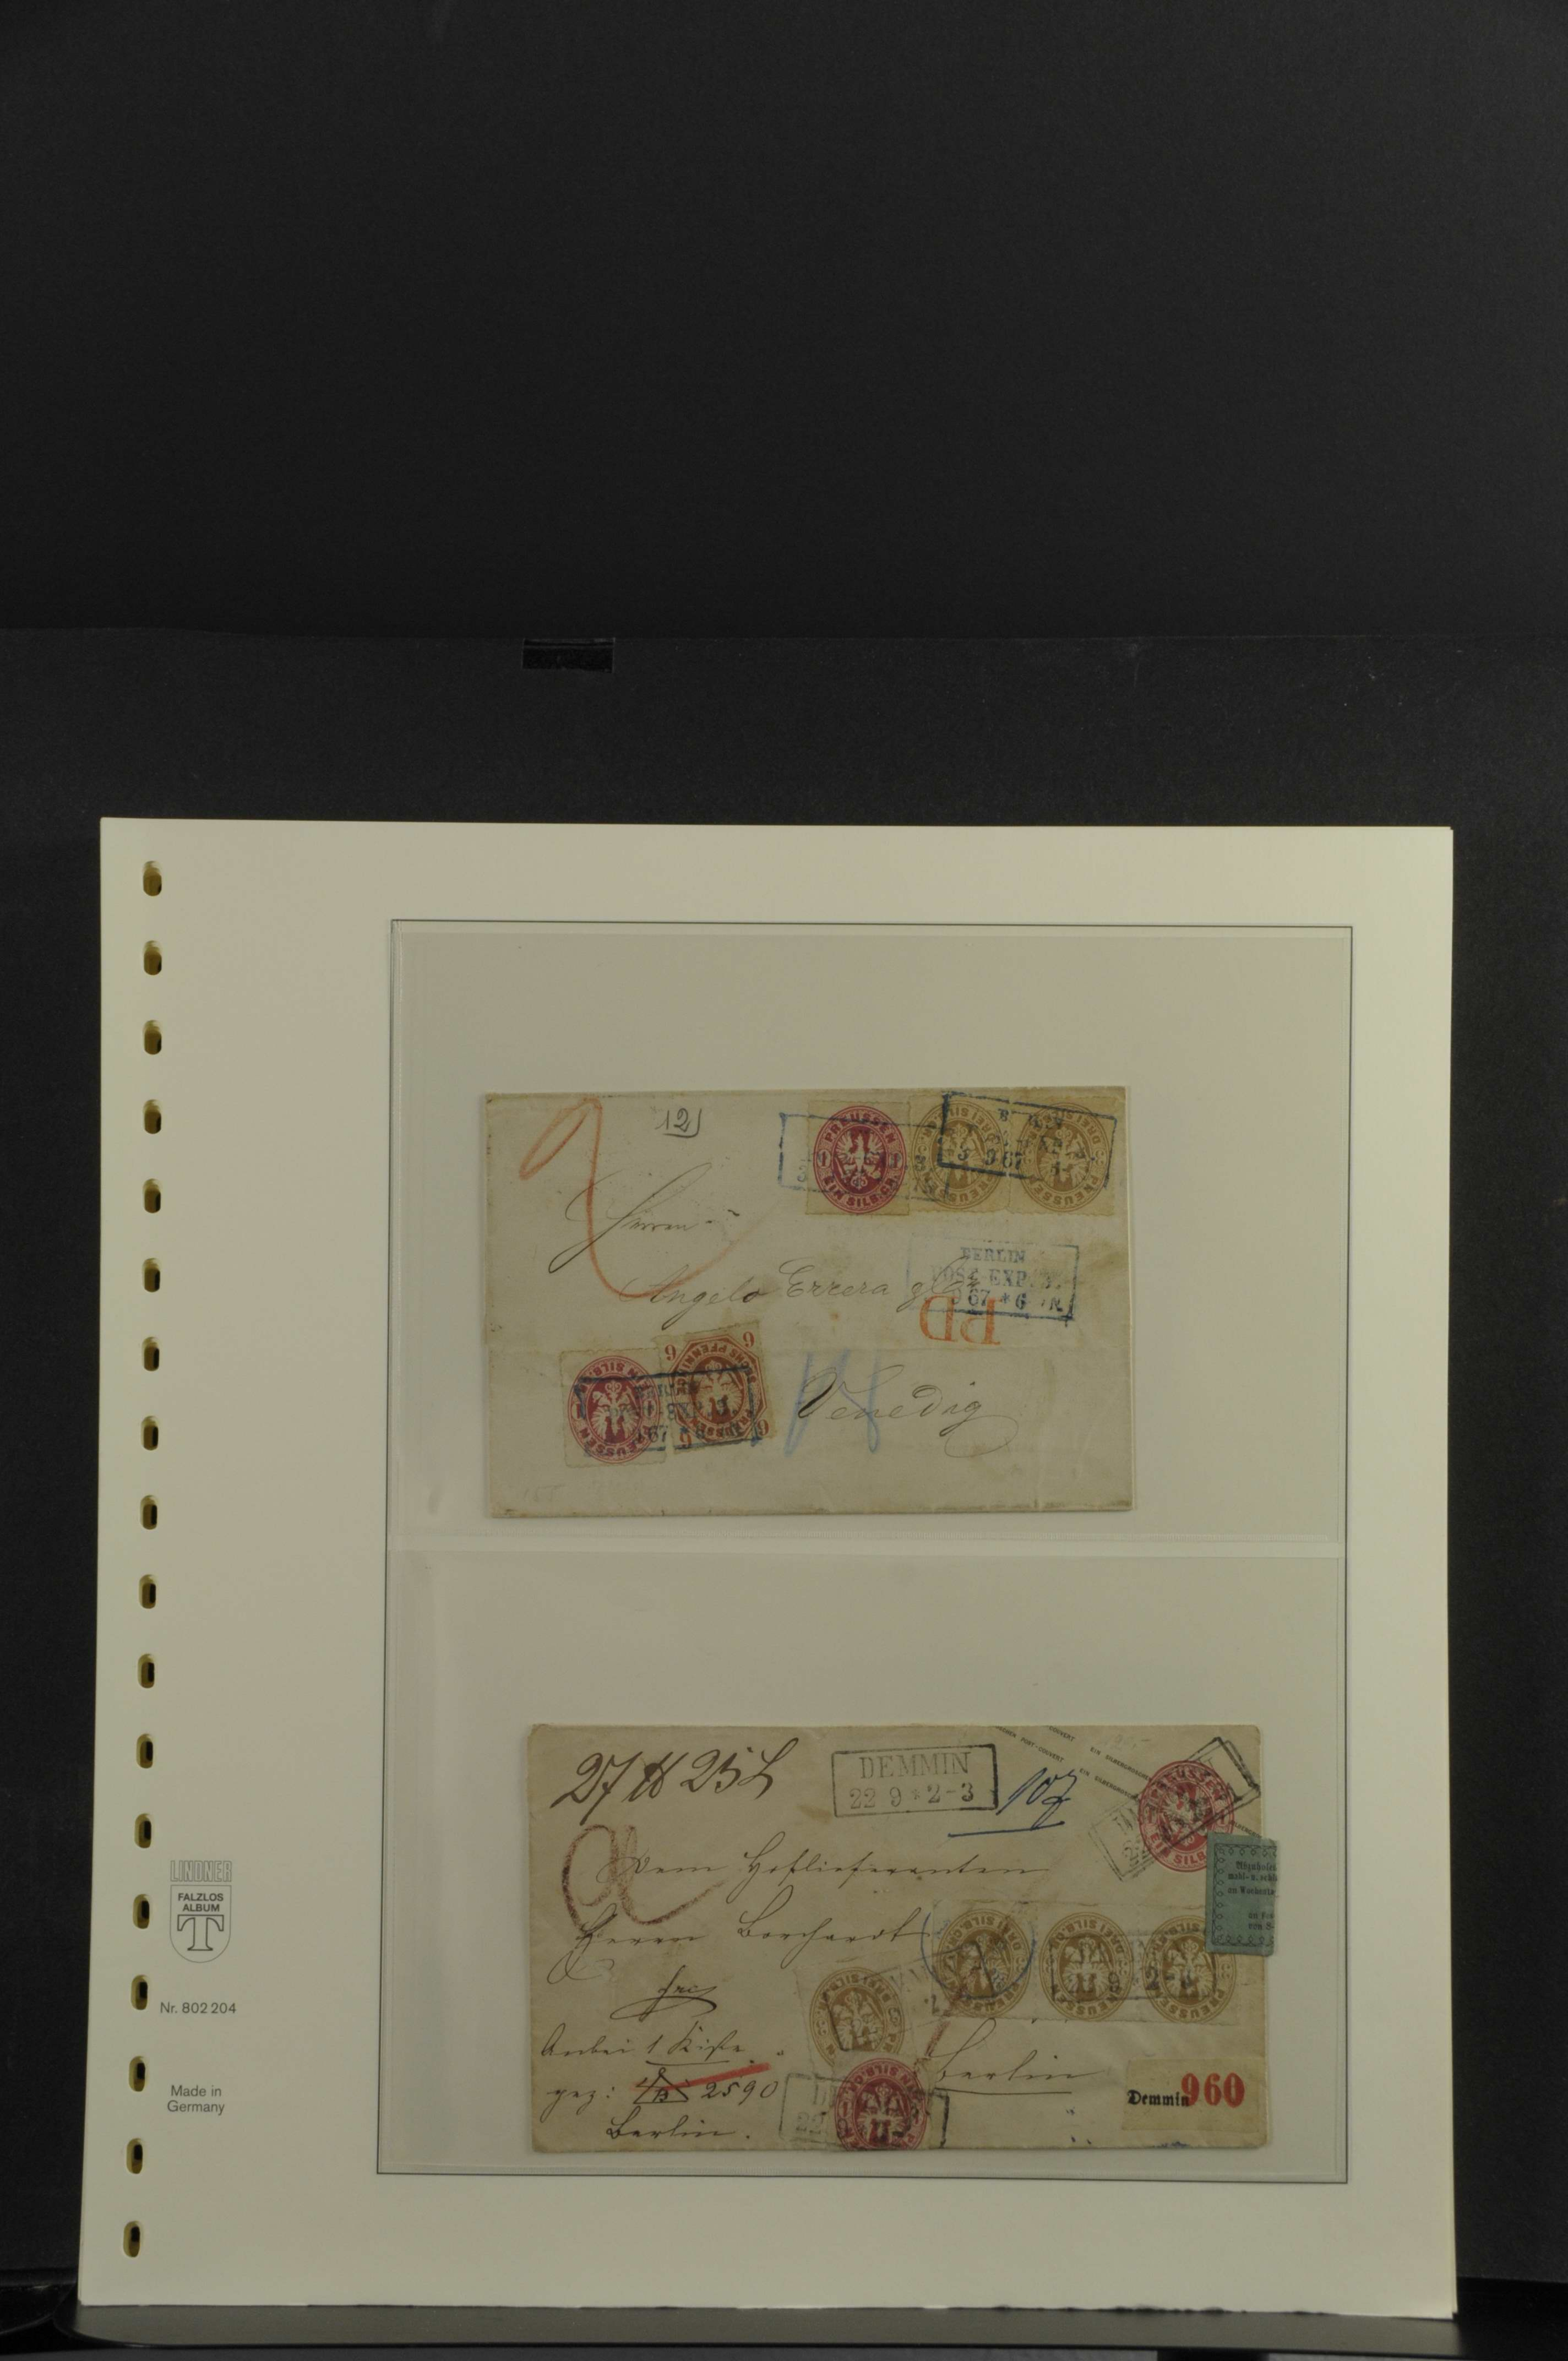 Lot 7878 - altdeutschland Preussen - Briefe -  Auktionshaus Ulrich Felzmann GmbH & Co. KG Auction 165 | Philately, Airmail, Zeppelinmail and Astrophilately, international,  German and collections.